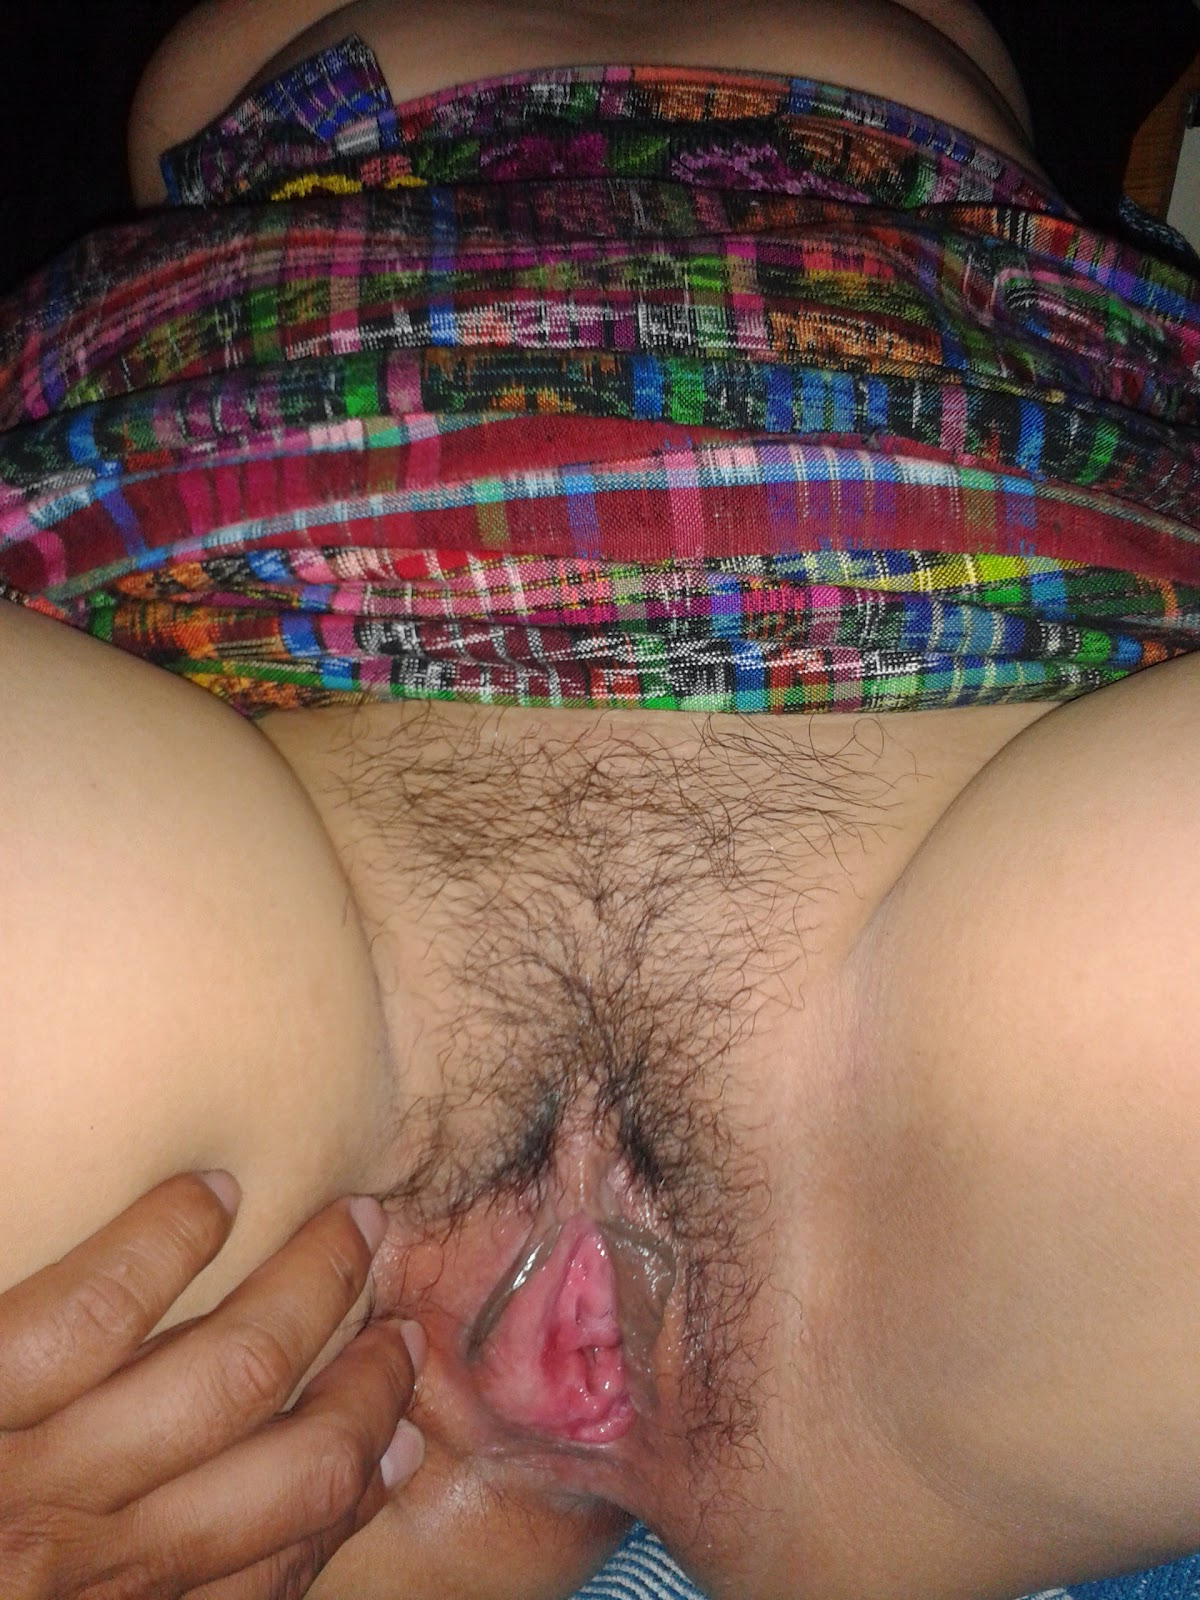 And fotos porno de chicas de corte de guatemala something is